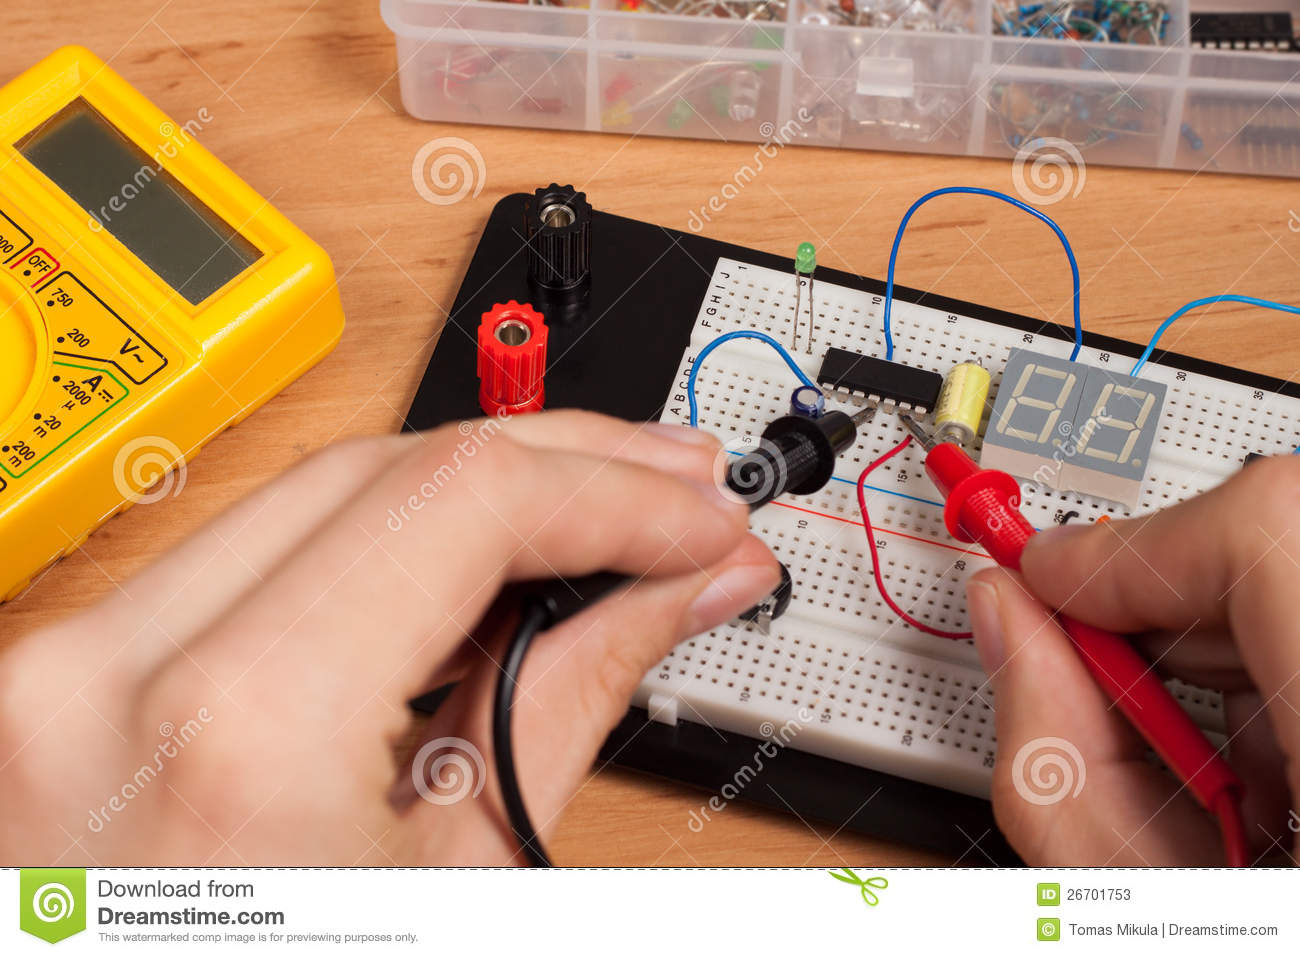 Testing Electrical Circuit On Breadboard Stock Image Of Breadboards Are Used To Prototype Electronic Circuits Without Having